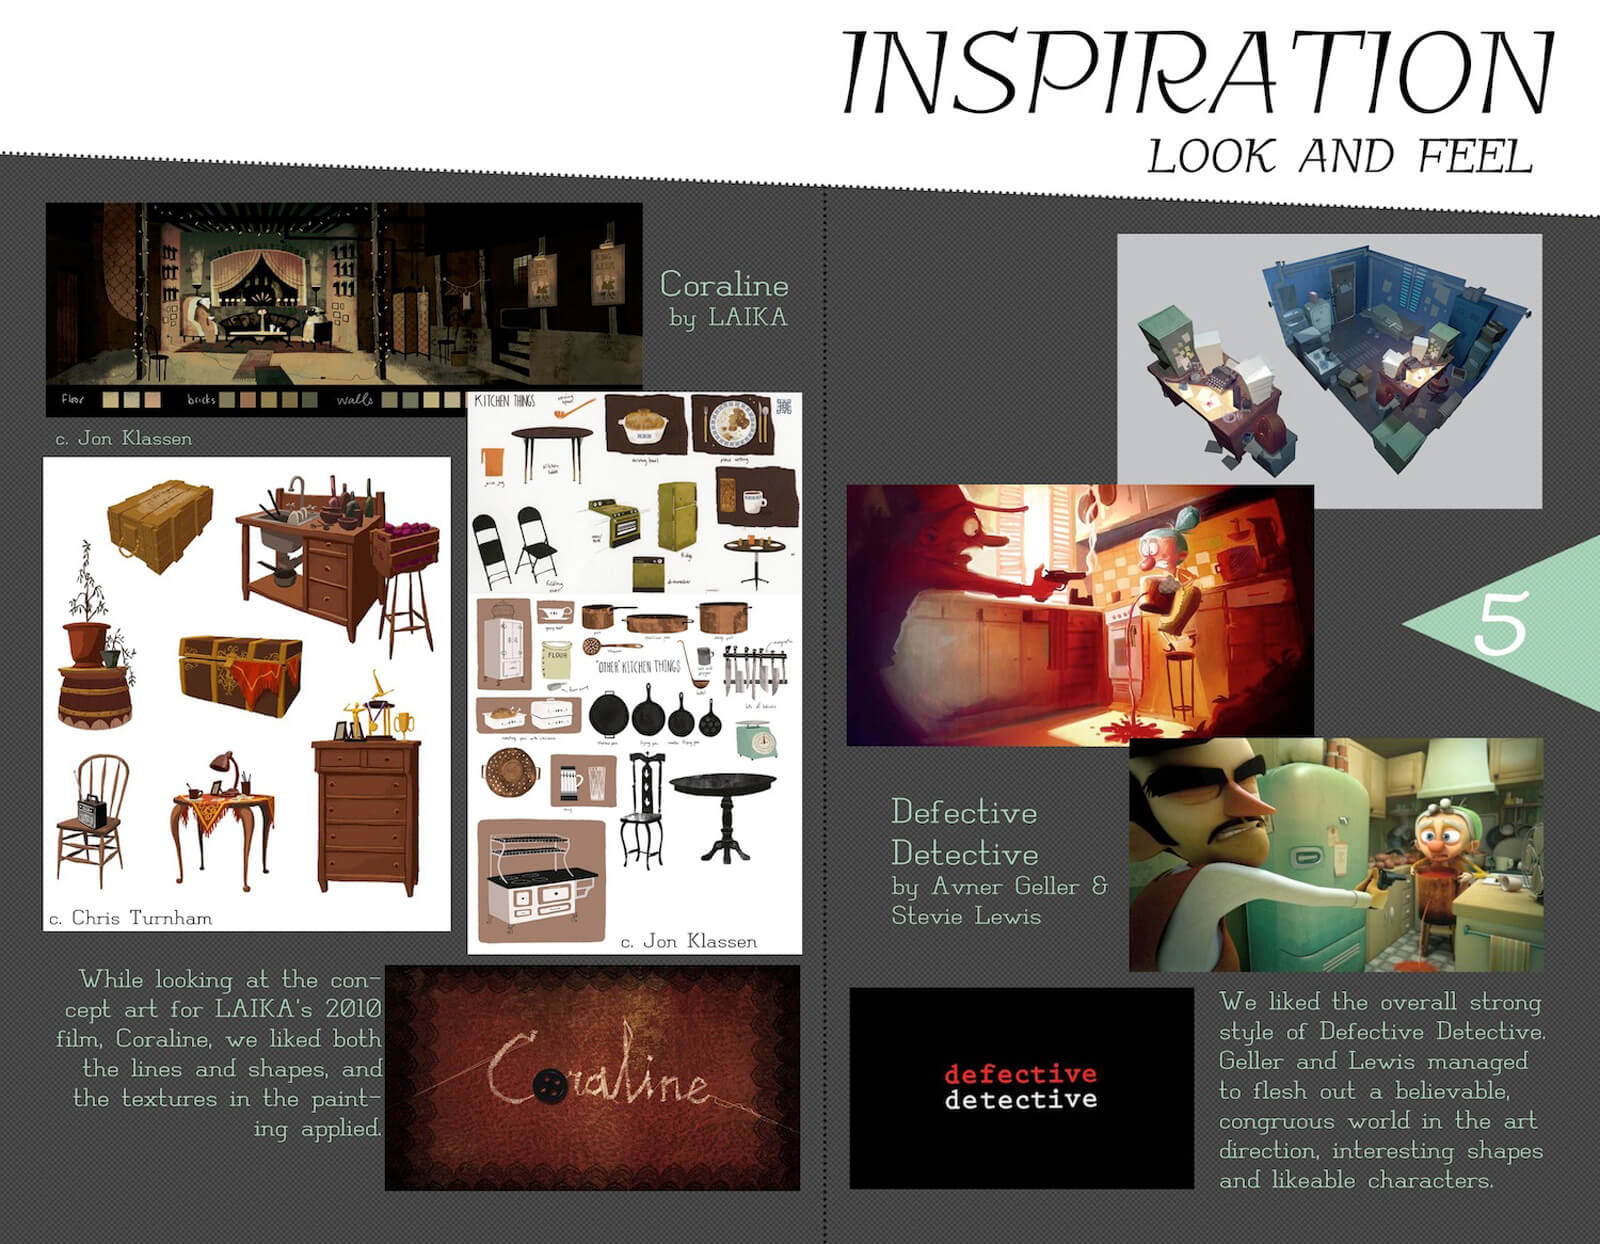 Look and feel inspiration slide for the film Super Secret, depicting reference art from Coraline and Defective Detective